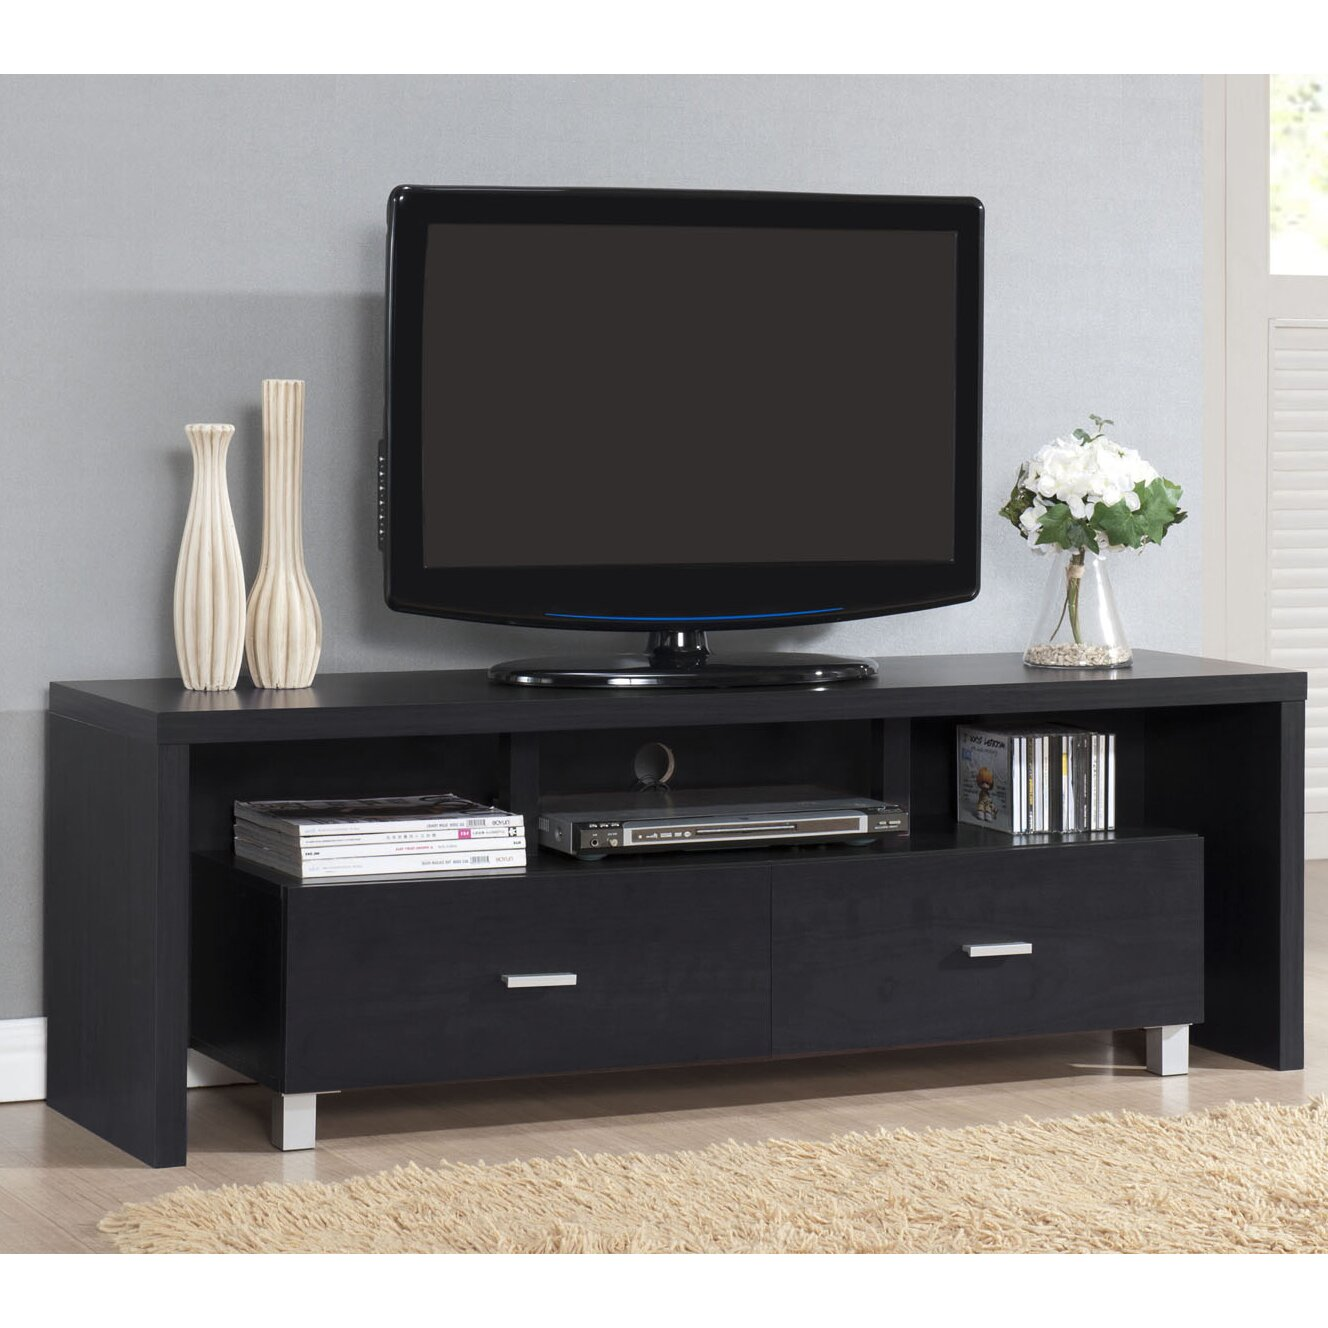 Tv Stand Designs Chennai : Hokku designs seema tv stand for tvs up to quot reviews